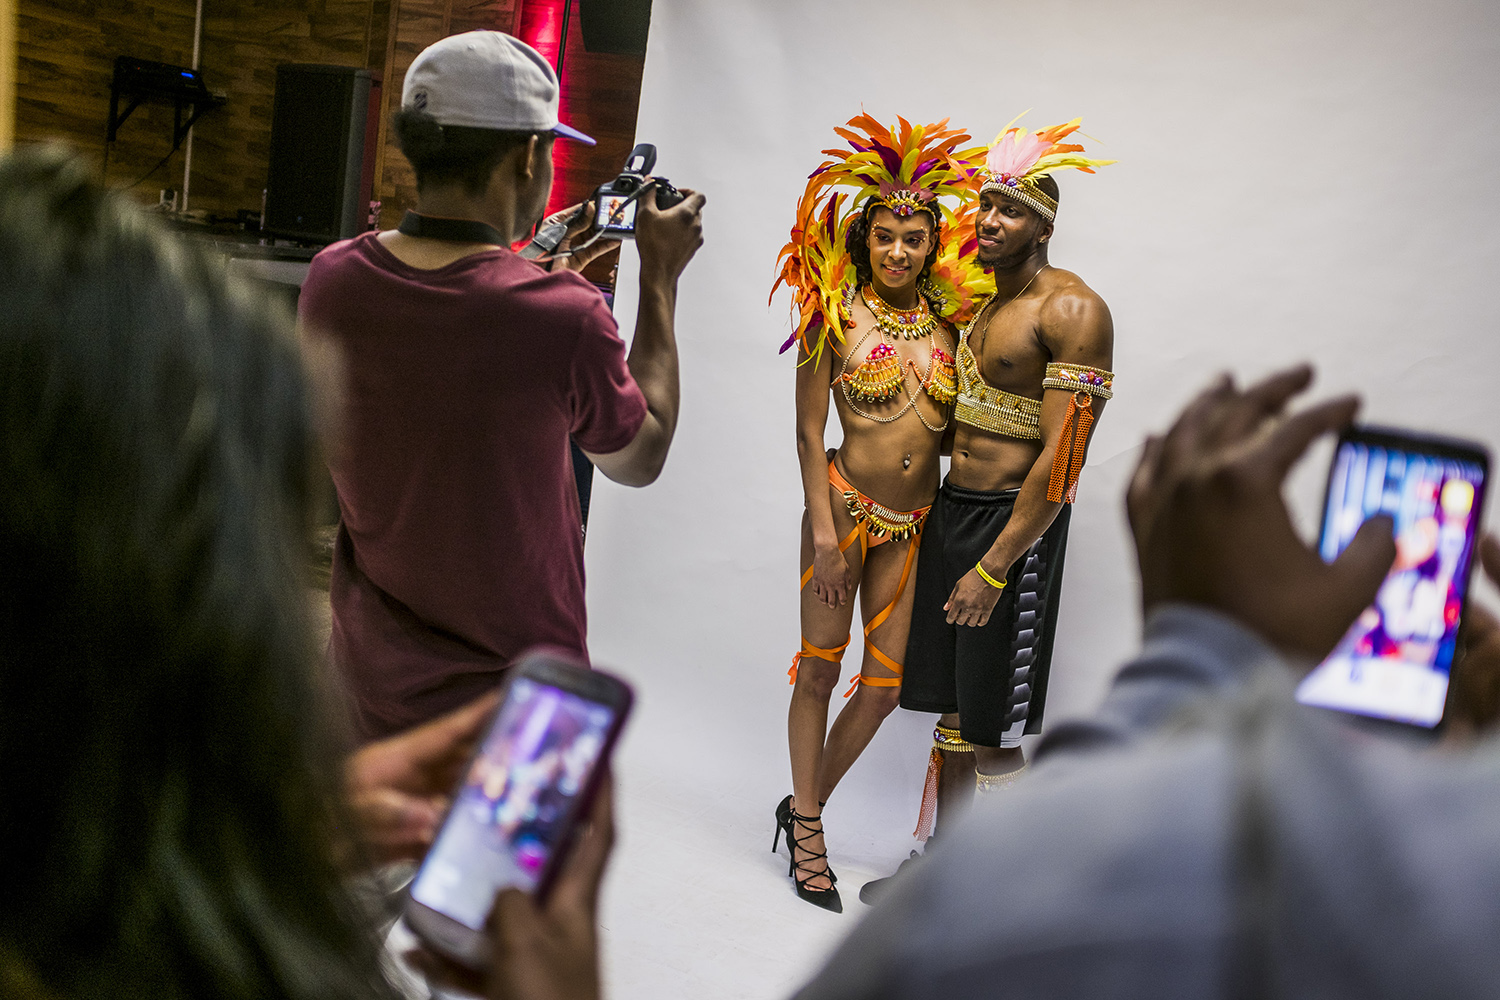 Masqueraders take part in a photo session with the new costumes they will be wearing during the Grand Parade.